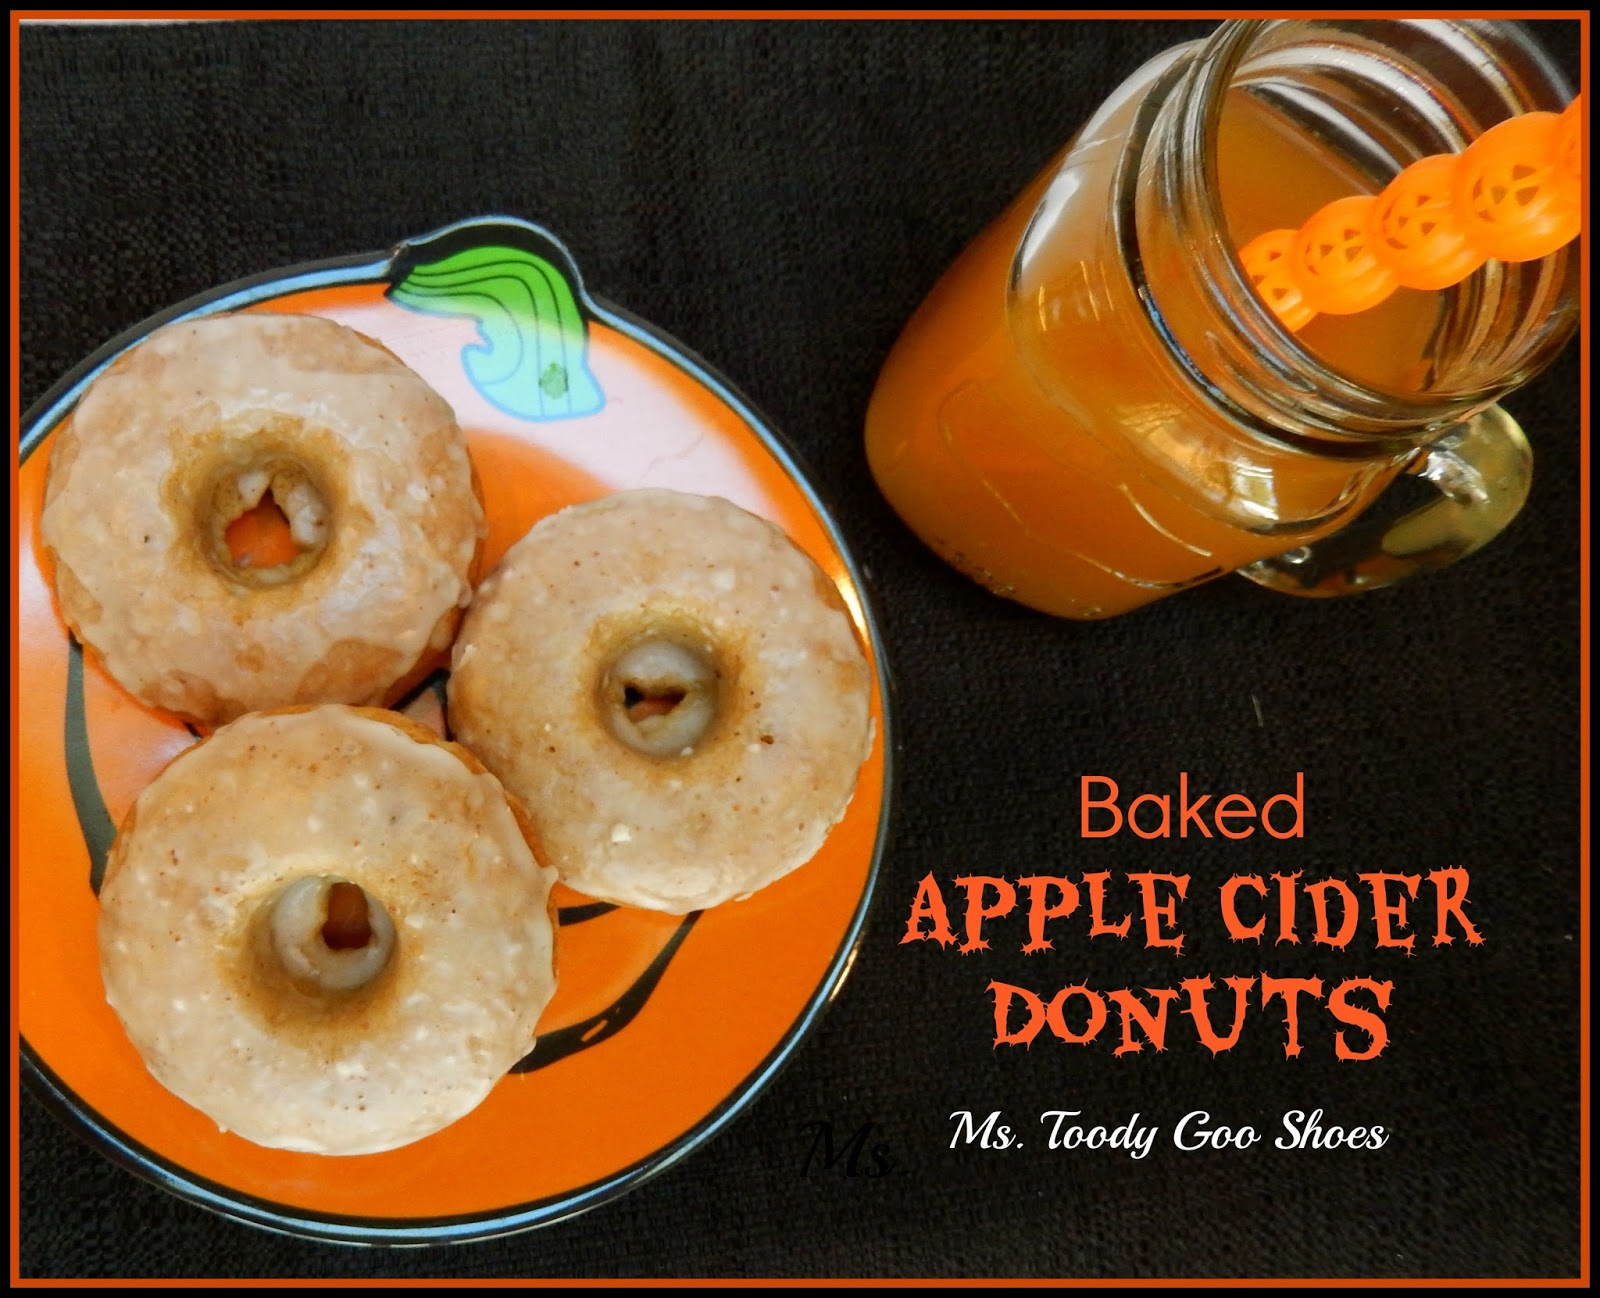 Baked Apple Cider Donuts by Ms. Toody Goo Shoes